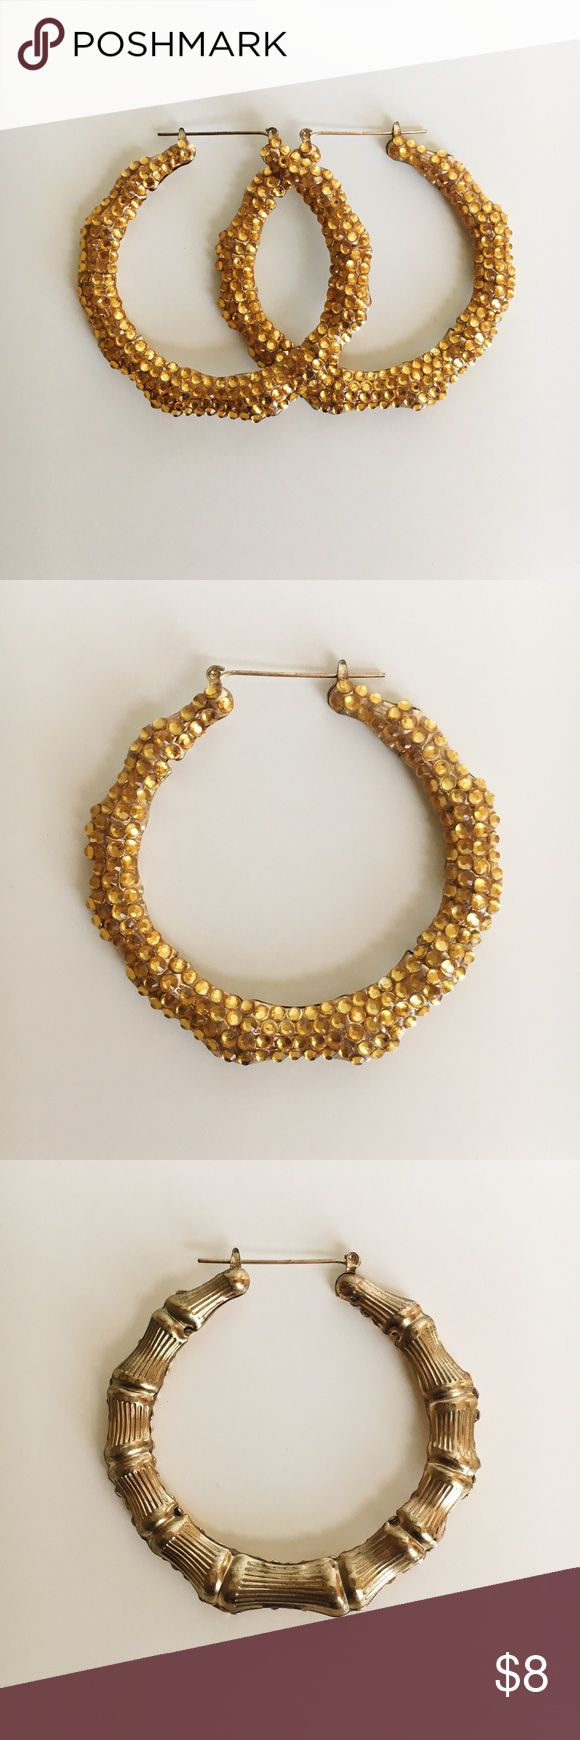 Gold Rhinestone Bamboo Earrings NWOT I bought these and then never ended up wearing them. They are in great condition and are not missing any Rhinestones. They are plain bamboo on one side so they can be worn both ways. Jewelry Earrings